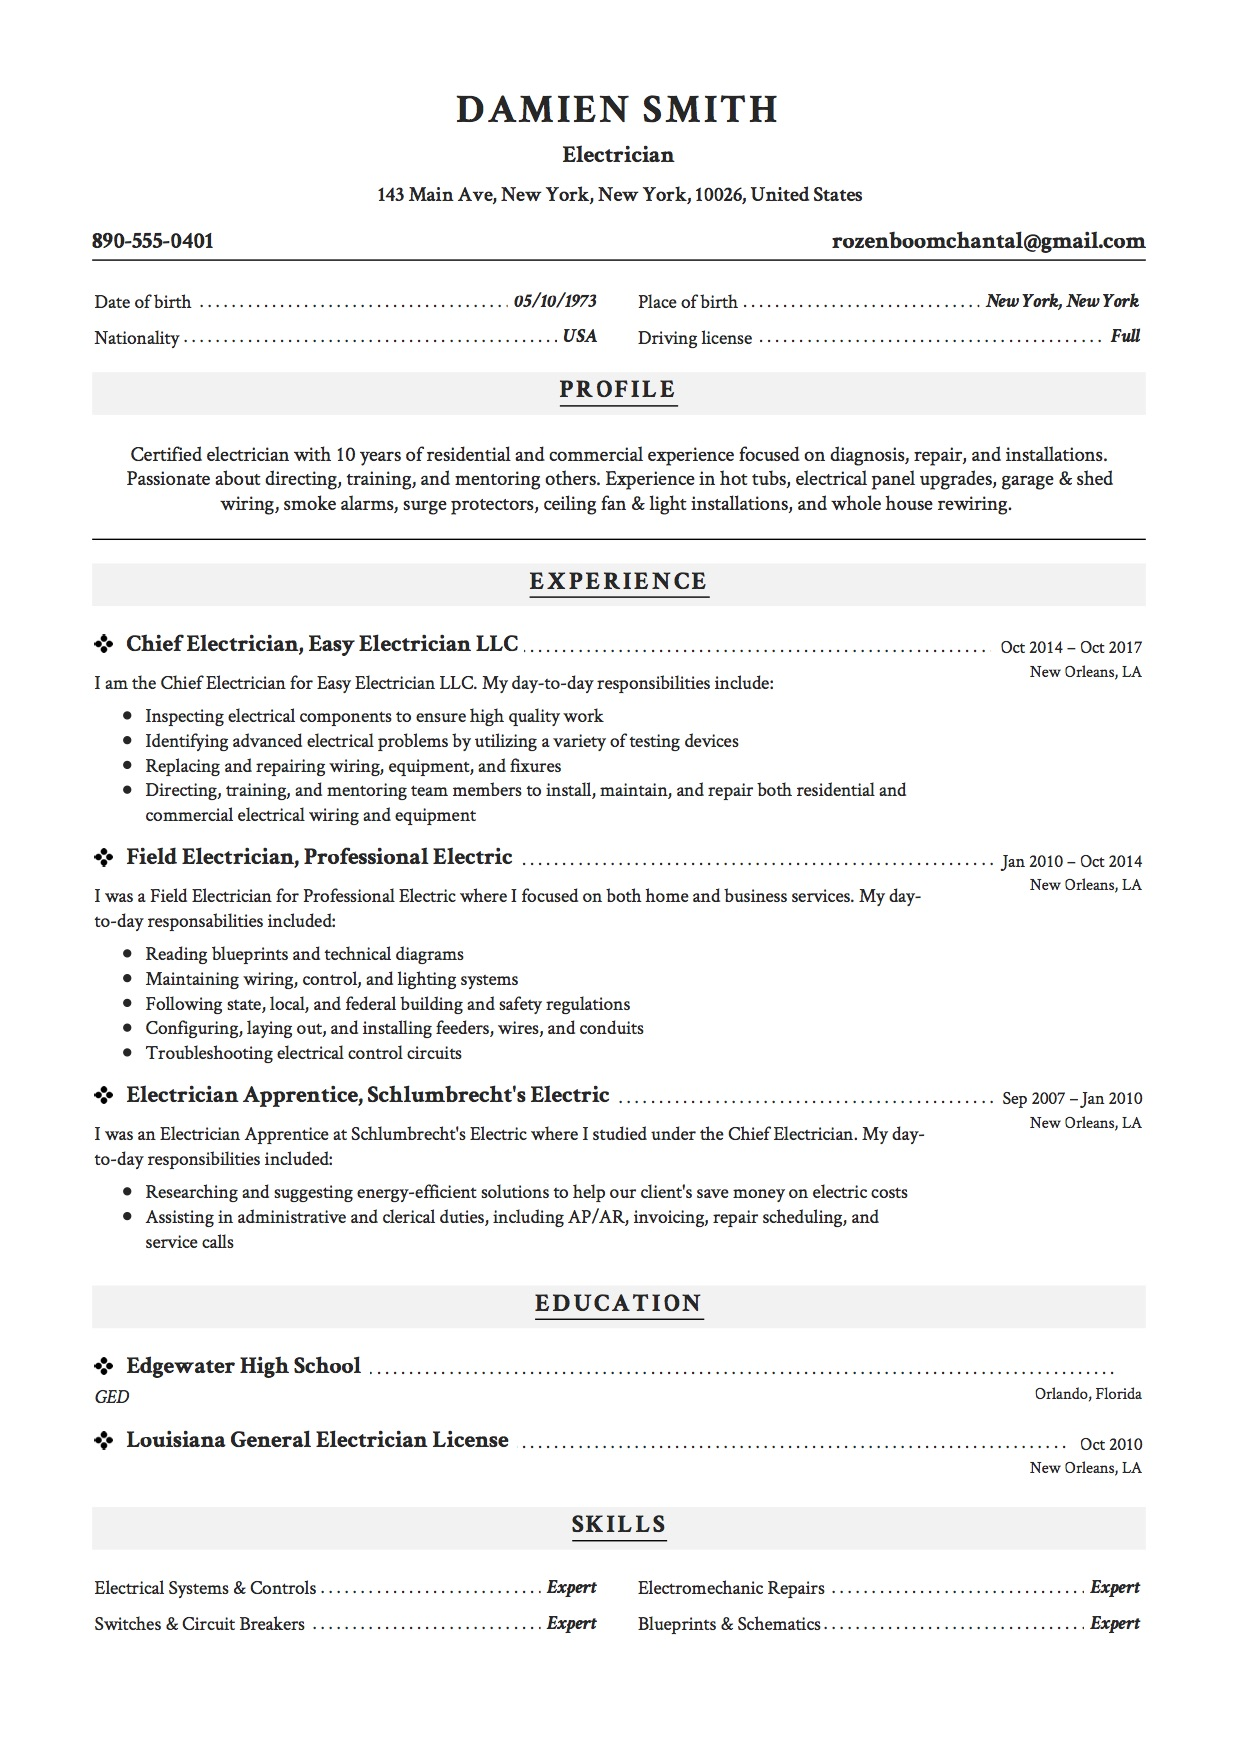 Resume Template Electrician  Electrician Resume Templates